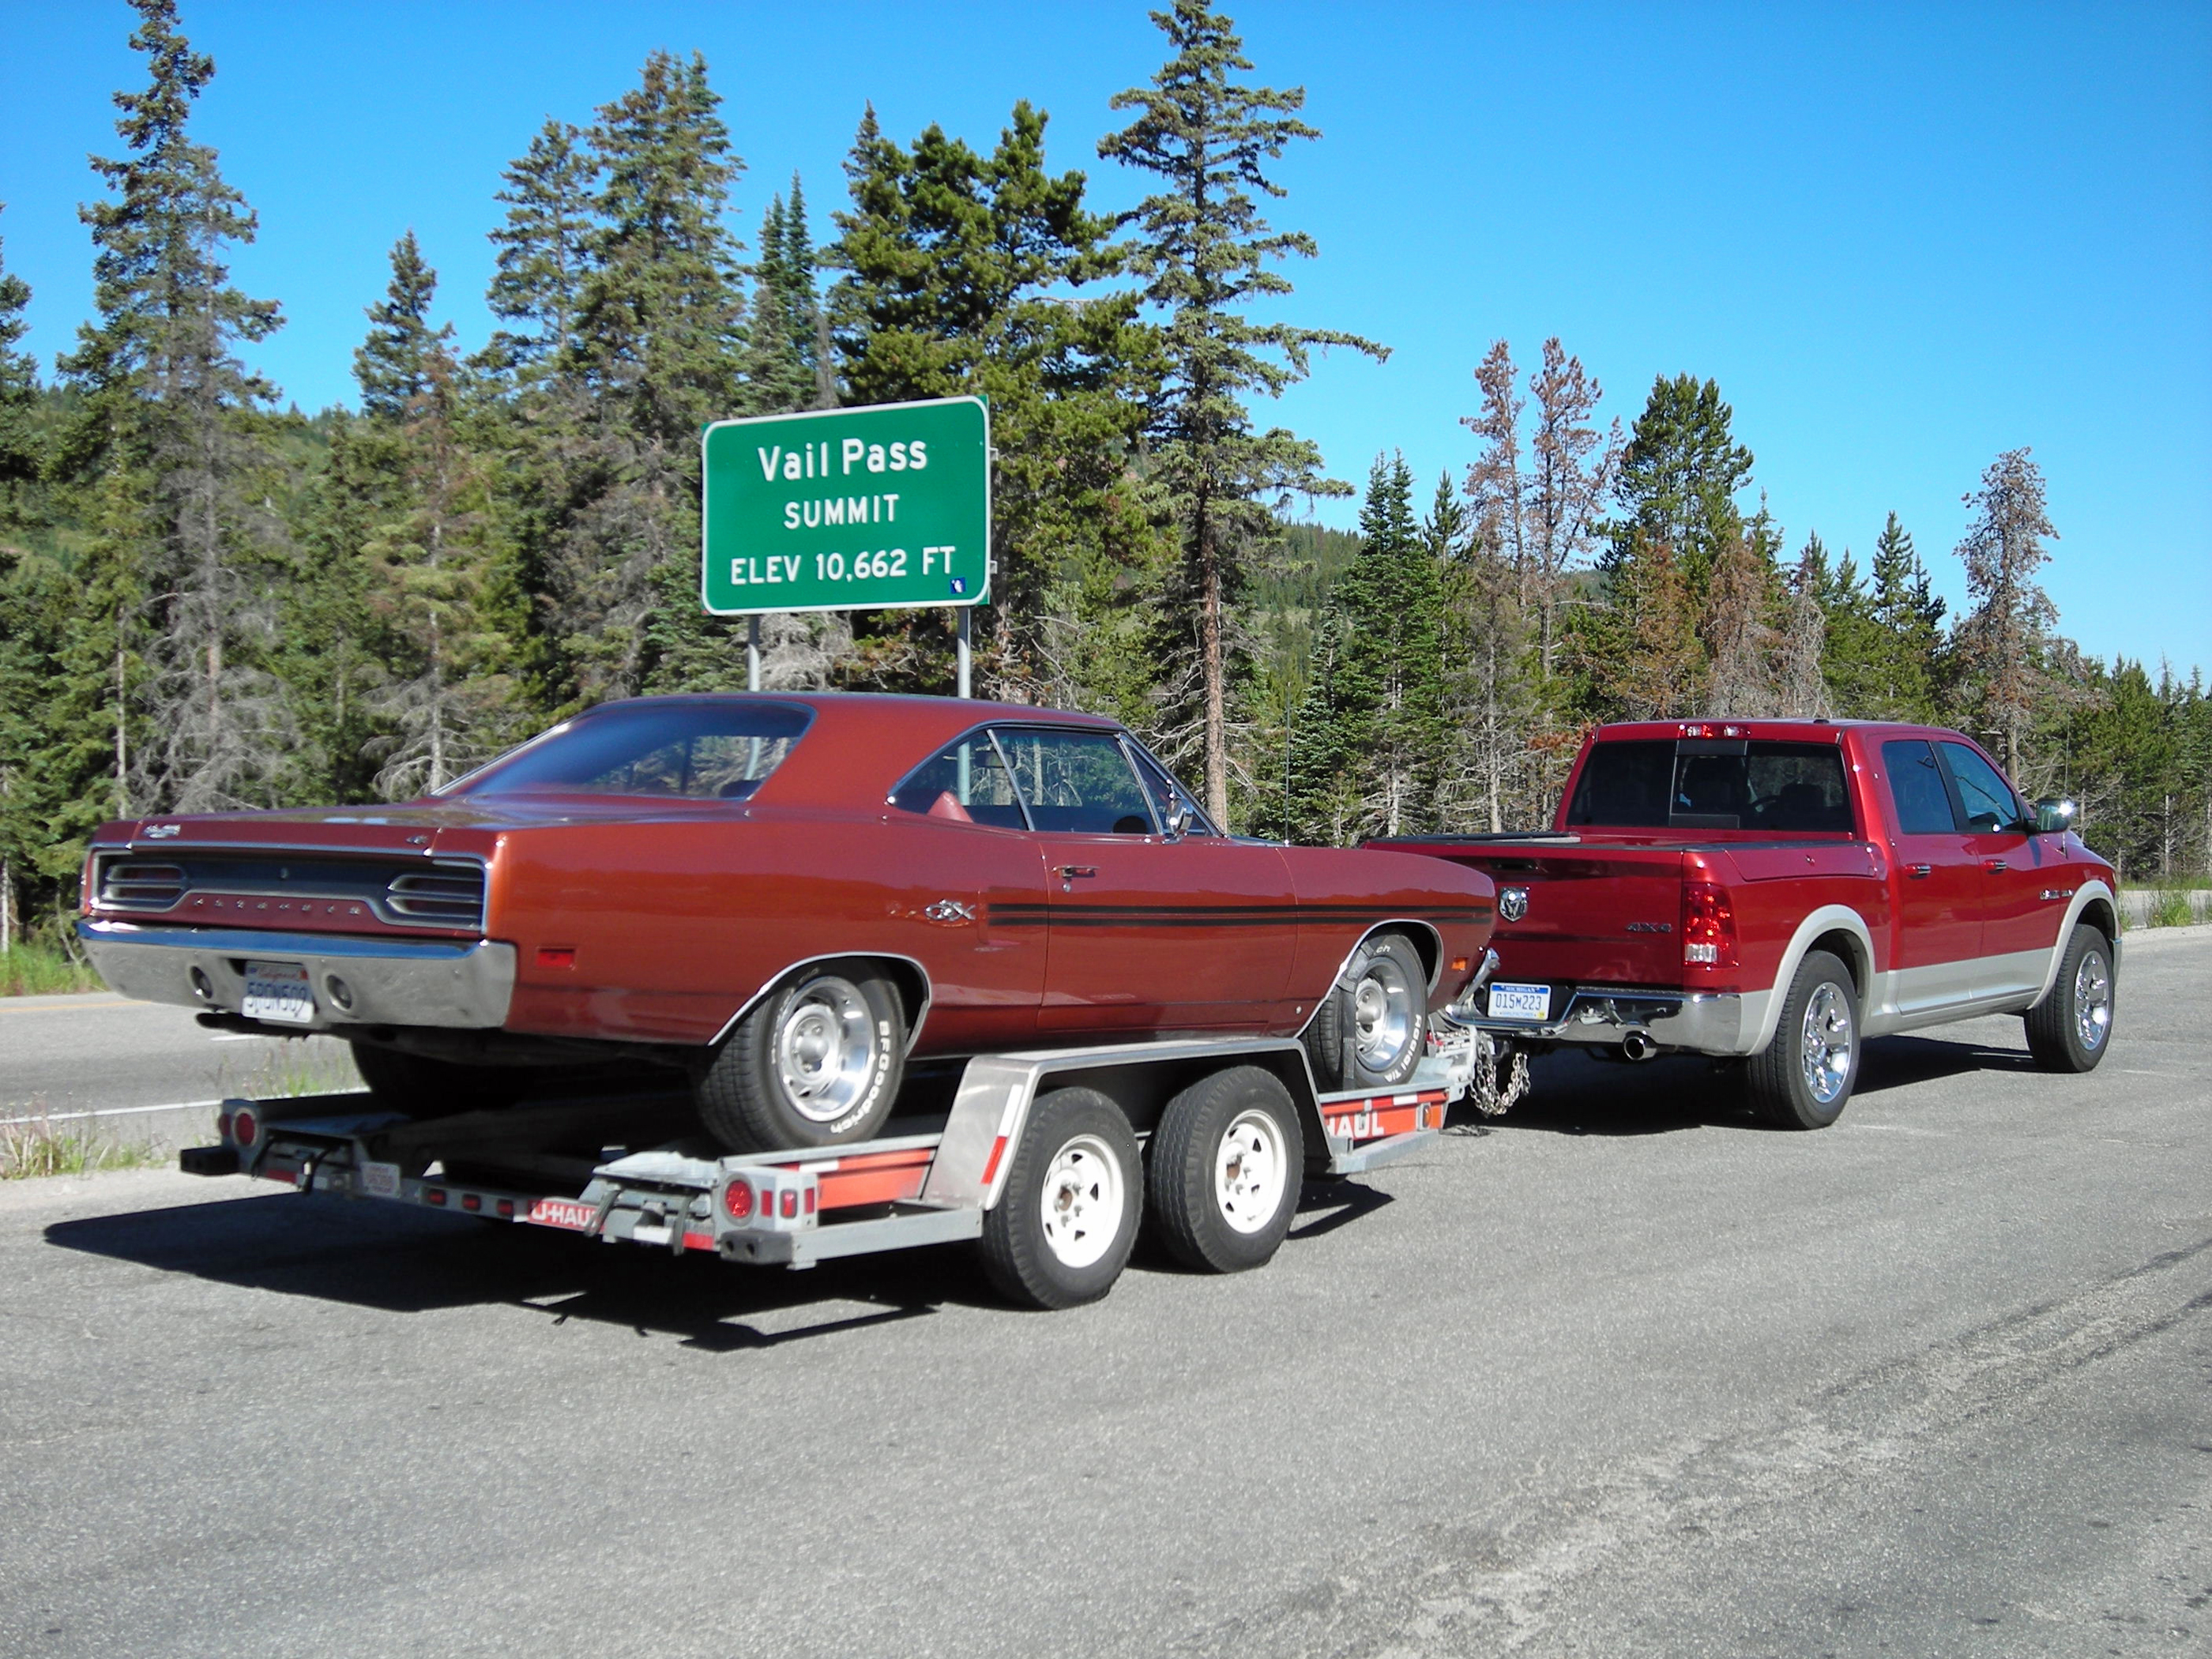 1970 Plymouth GTX Vail Pass